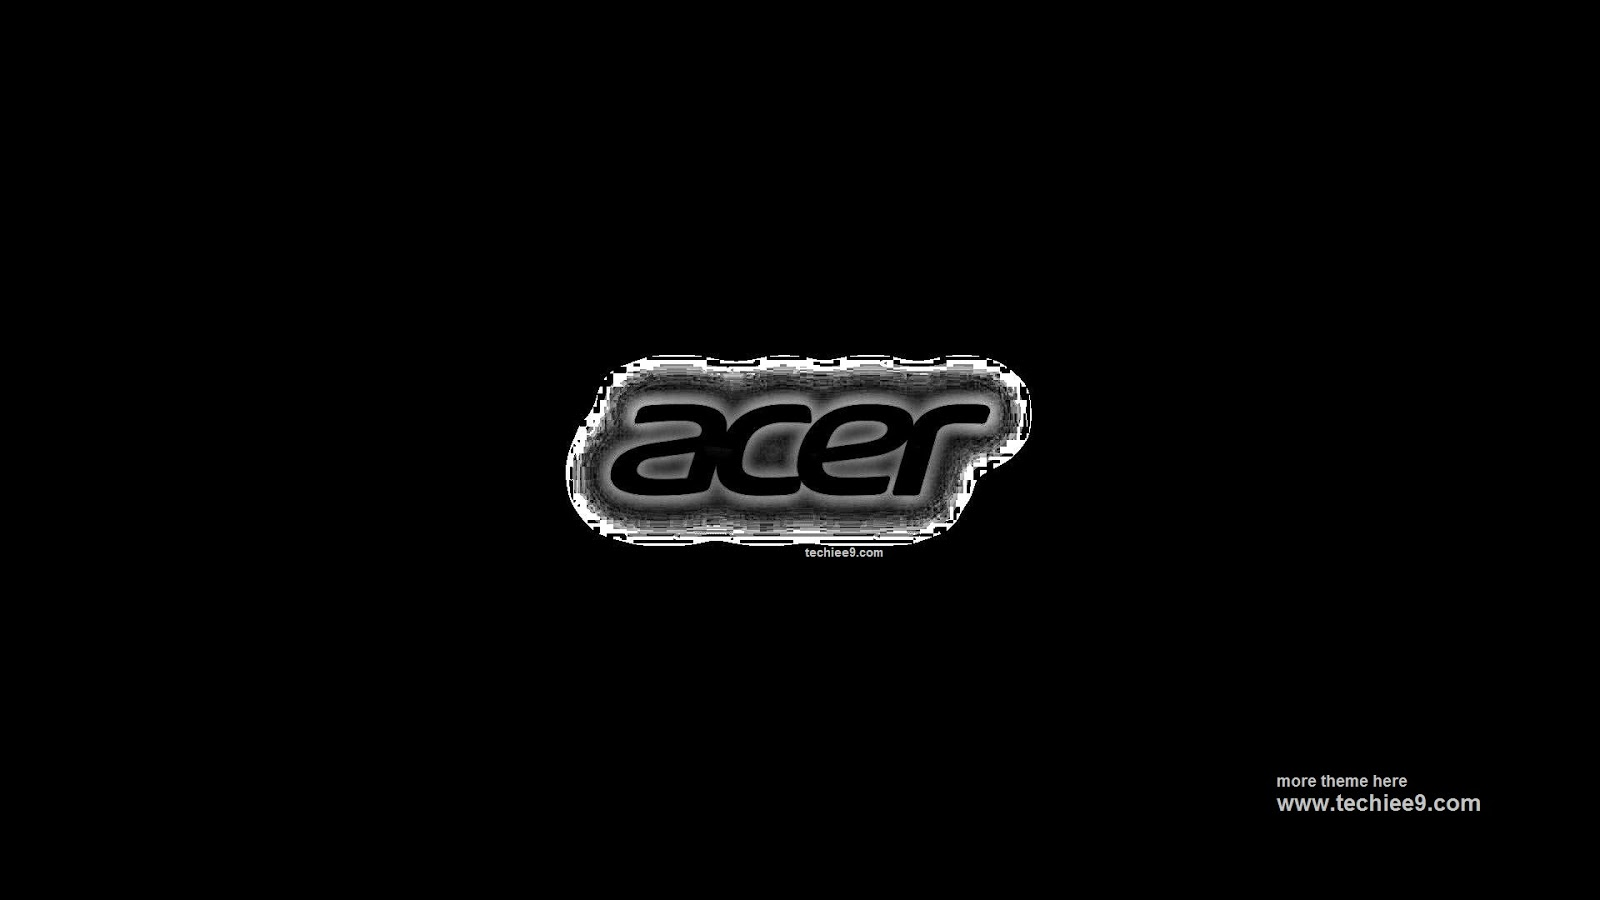 Acer black 2013 wallpaper 1920x1080 hd wallpapers